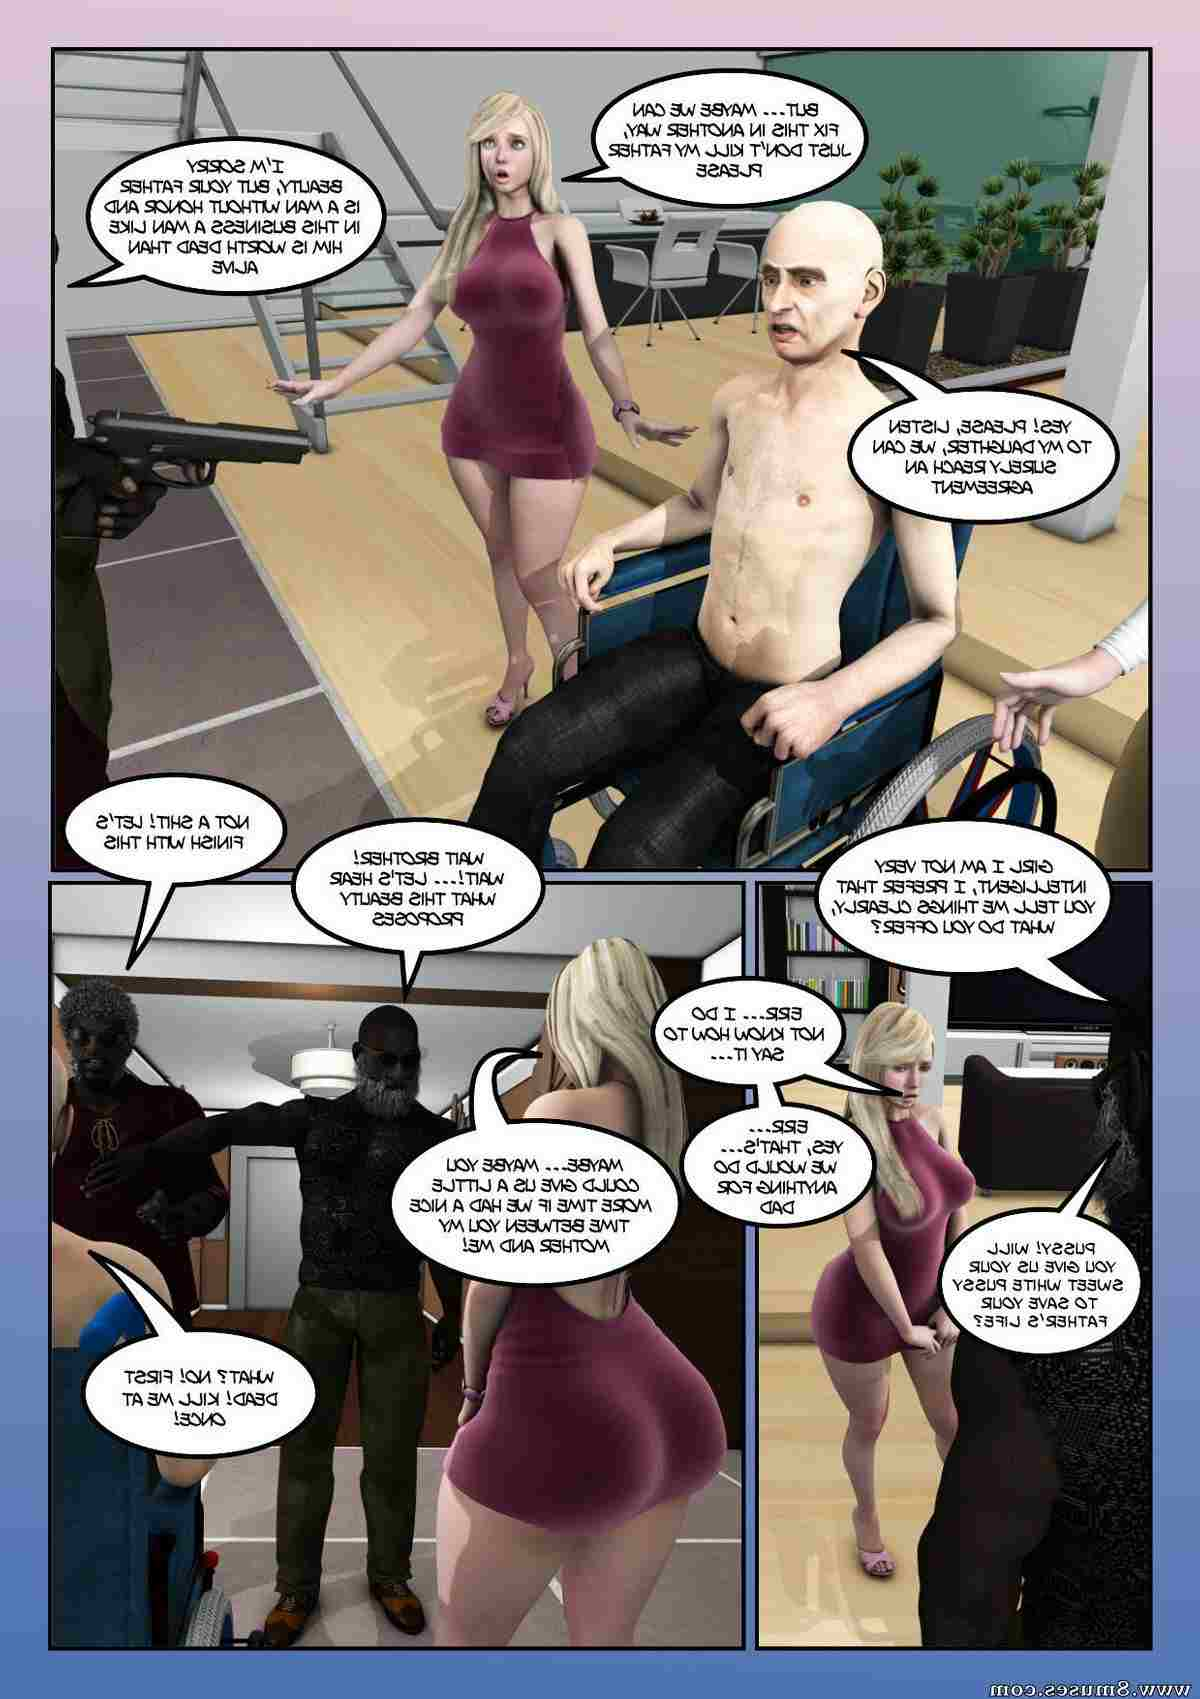 Moiarte-Comics/Past-Mistakes Past_Mistakes__8muses_-_Sex_and_Porn_Comics_18.jpg